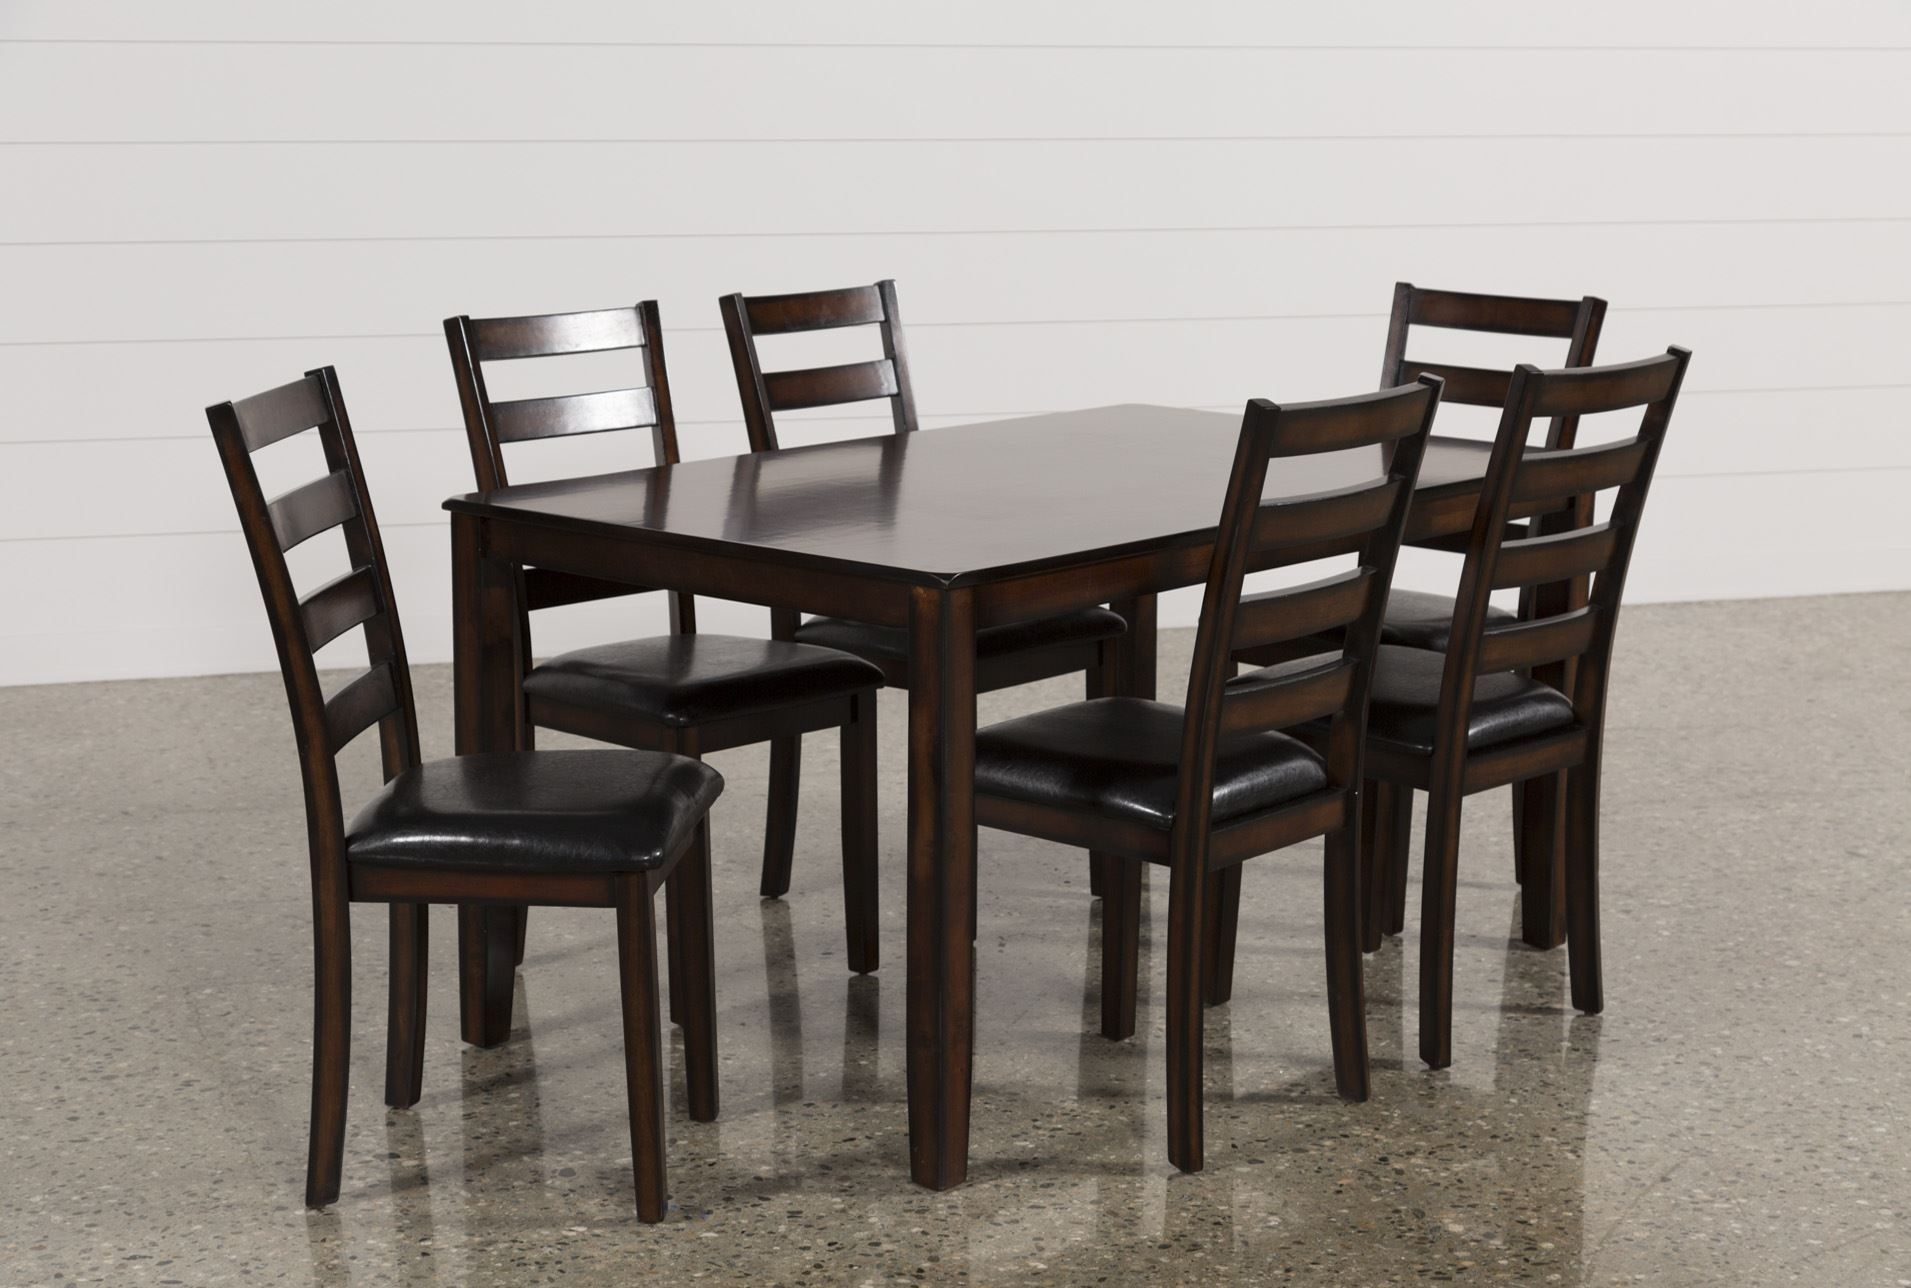 Sawyer 7 Piece Dining Set – Signature | Homestyle | Pinterest Pertaining To Latest Valencia 72 Inch 7 Piece Dining Sets (View 15 of 20)